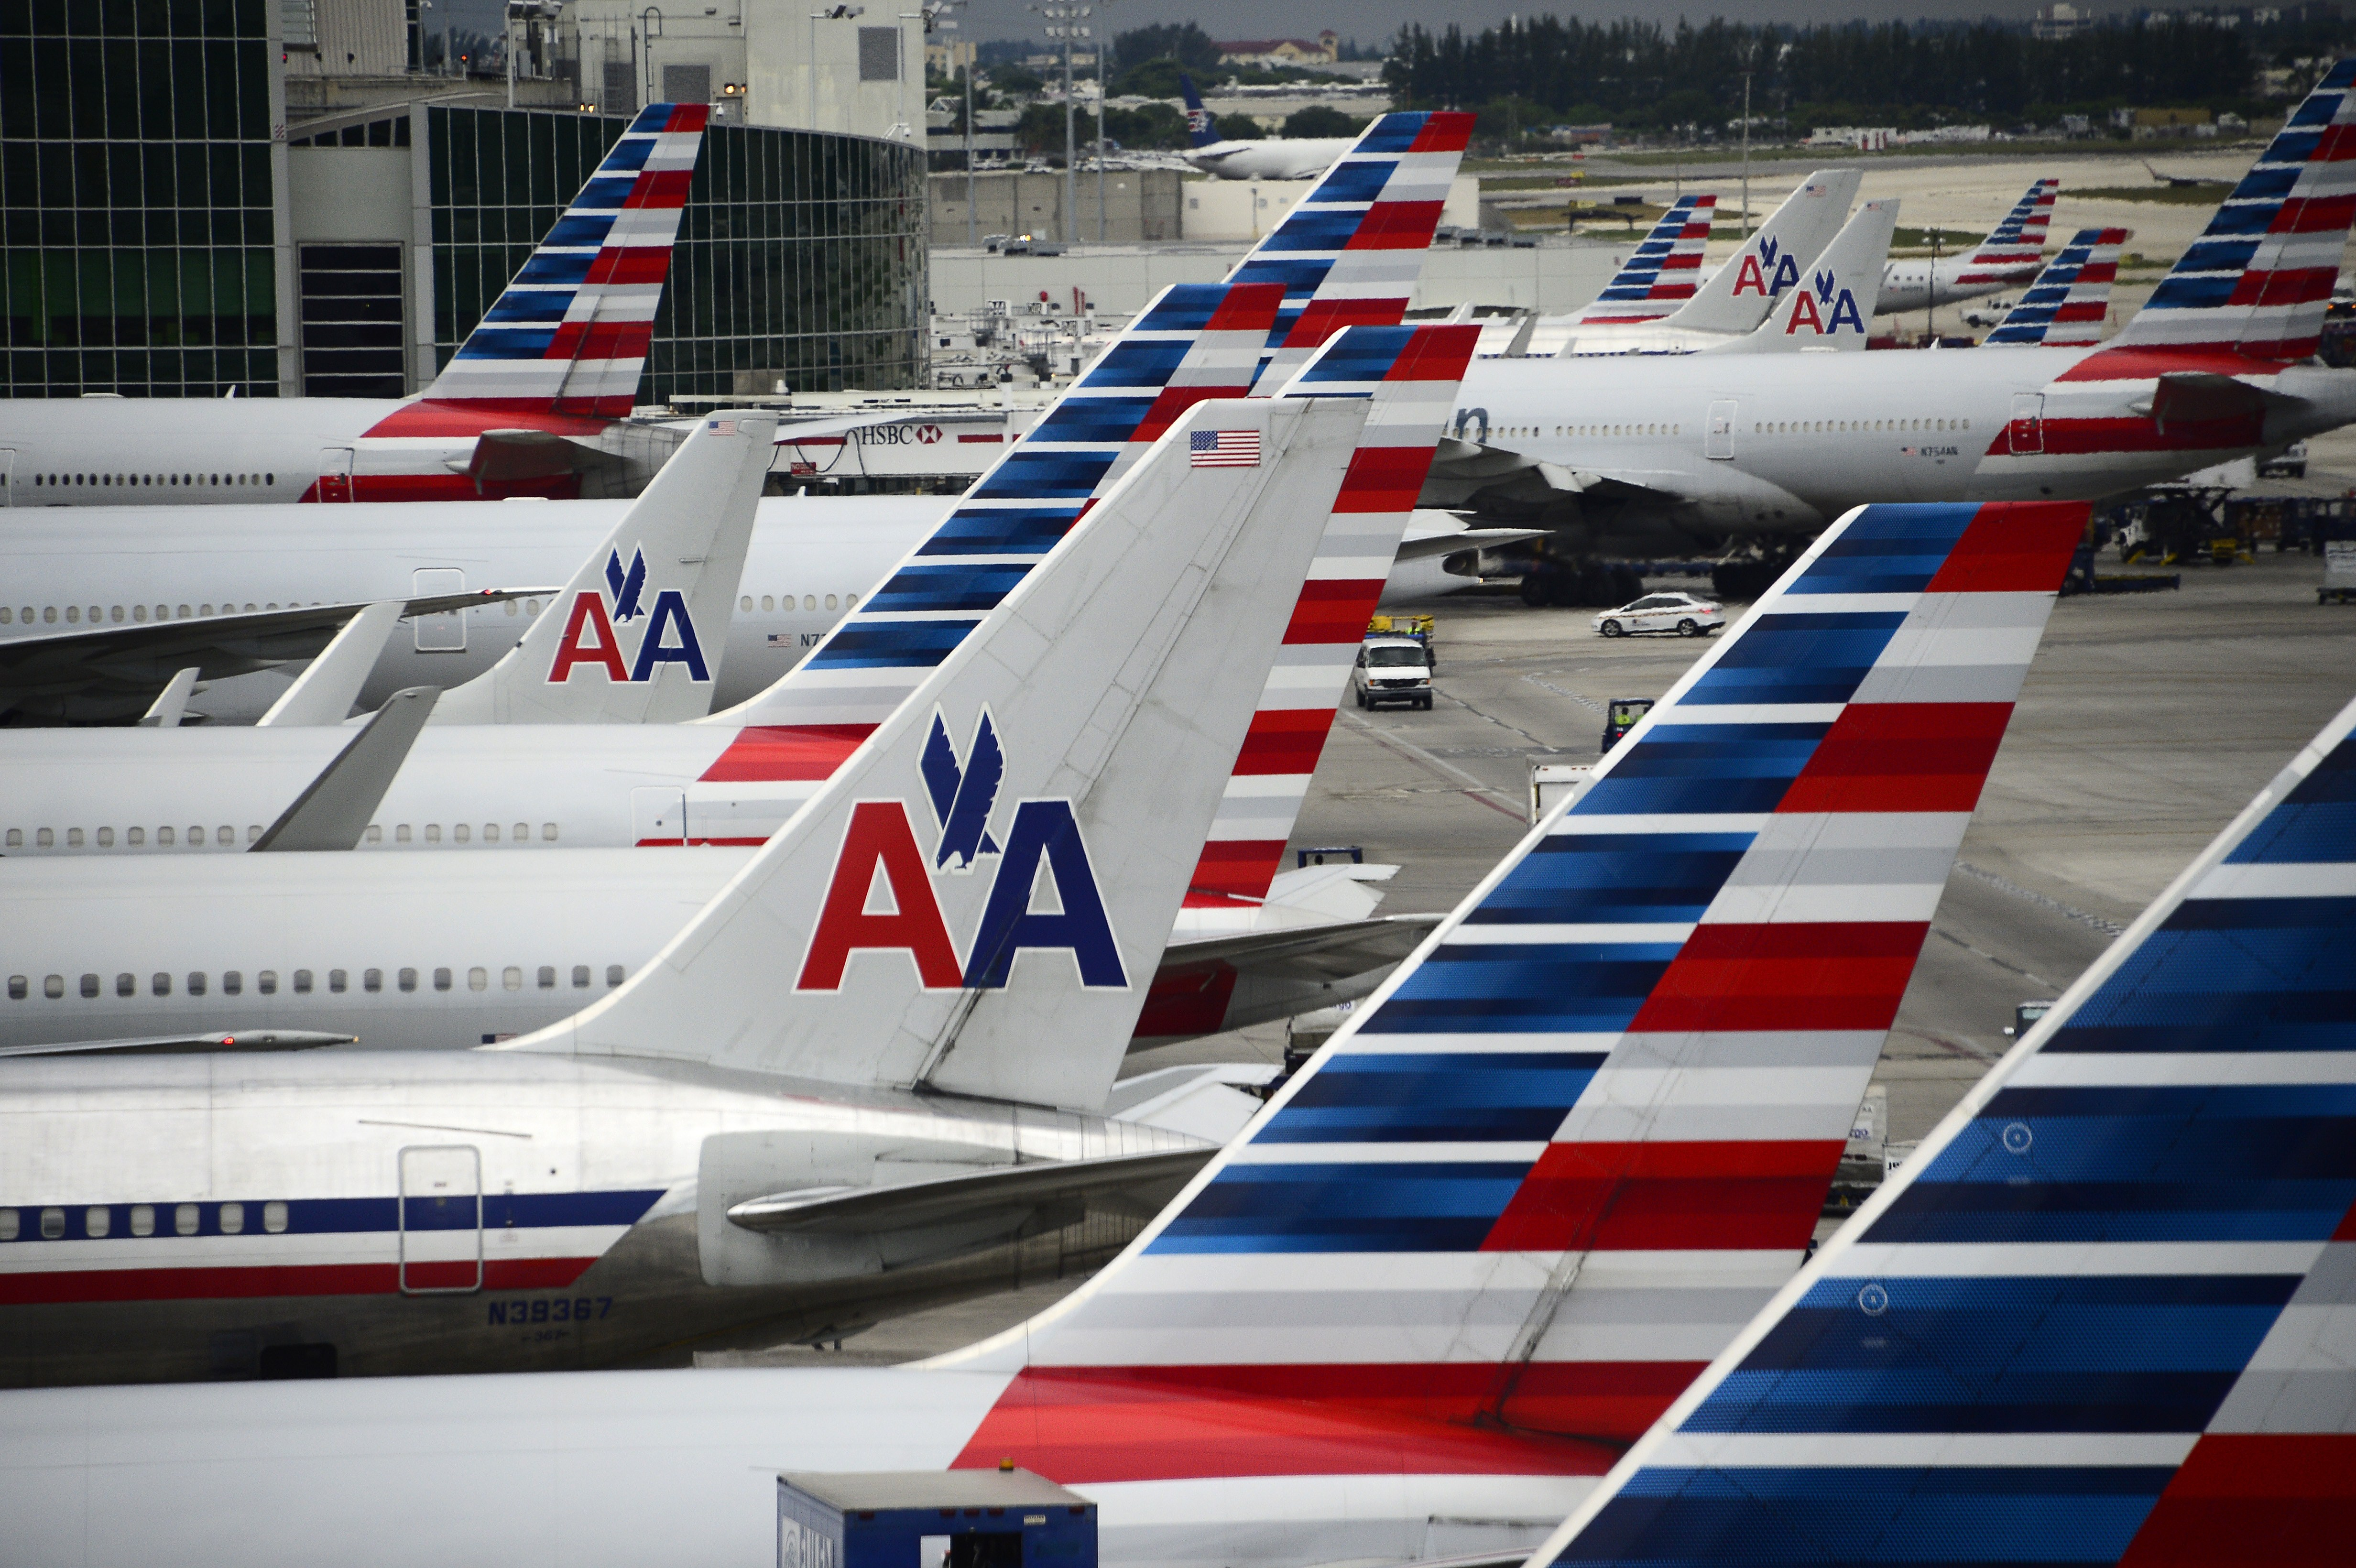 American Airlines passenger planes are seen on the tarmac at Miami International Airport in Miami, Flor. on June 8, 2015.